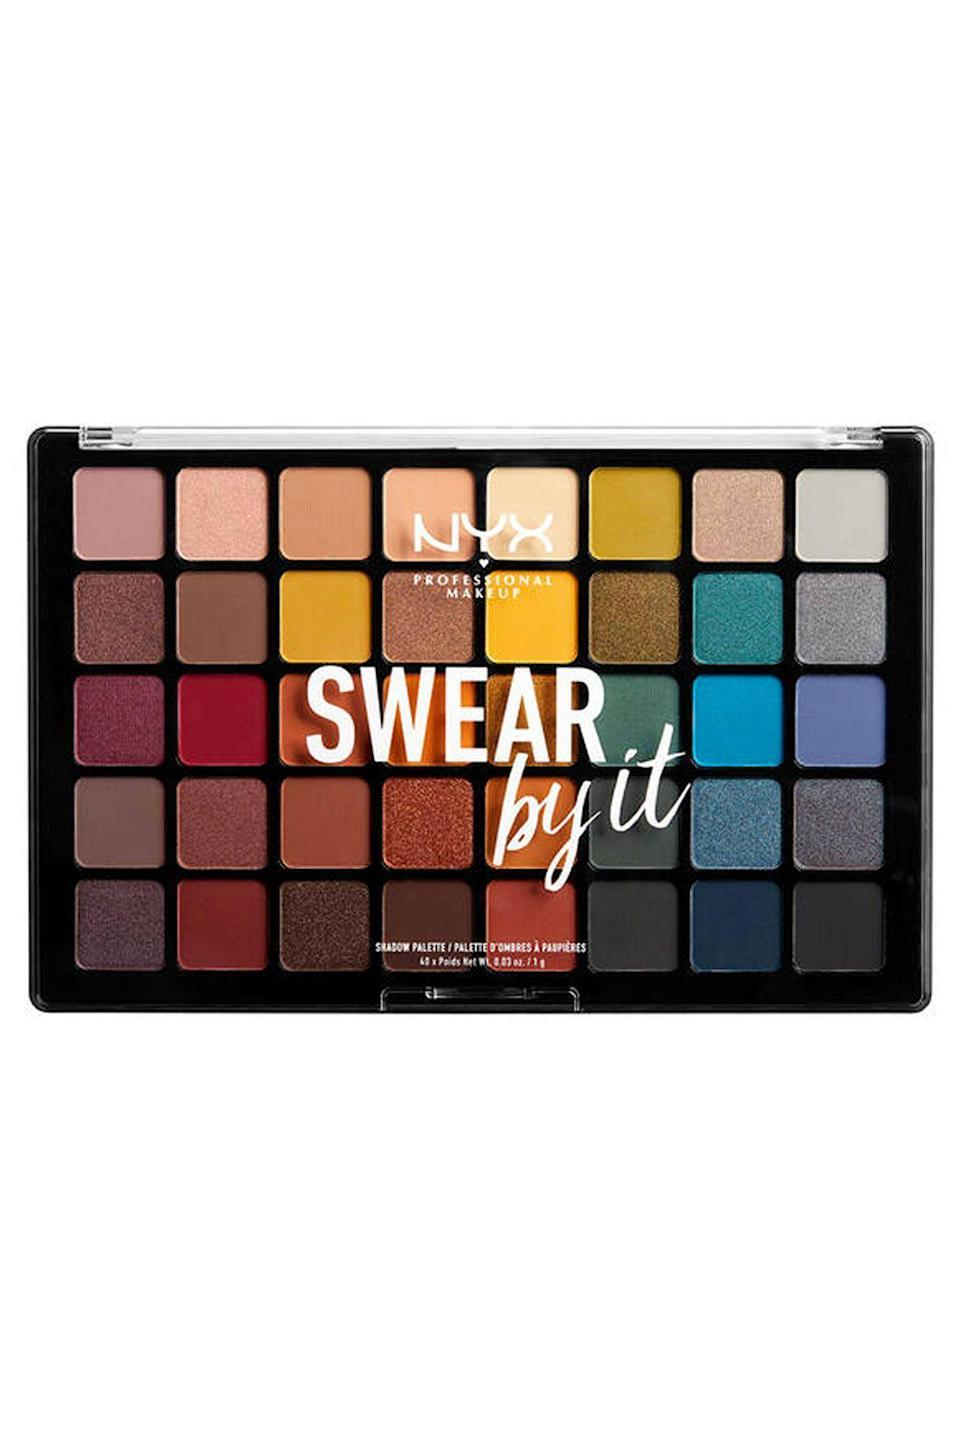 """<p><strong>NYX Professional Makeup</strong></p><p>nyxcosmetics.com</p><p><strong>$35.00</strong></p><p><a href=""""https://go.redirectingat.com?id=74968X1596630&url=https%3A%2F%2Fwww.nyxcosmetics.com%2Feyes%2Feyeshadow-palettes%2Fswear-by-it-shadow-palette%2FNYX_635.html&sref=https%3A%2F%2Fwww.seventeen.com%2Fbeauty%2Fg29487979%2Fbest-eyeshadow-makeup-palettes%2F"""" rel=""""nofollow noopener"""" target=""""_blank"""" data-ylk=""""slk:SHOP NOW"""" class=""""link rapid-noclick-resp"""">SHOP NOW</a></p><p>Featuring a fab assortment of cool and warm tones, as well as metallics and mattes, this fun palette is a product you'll <em>swear by</em>. And at $35, 40 shades is such a bargain!</p>"""